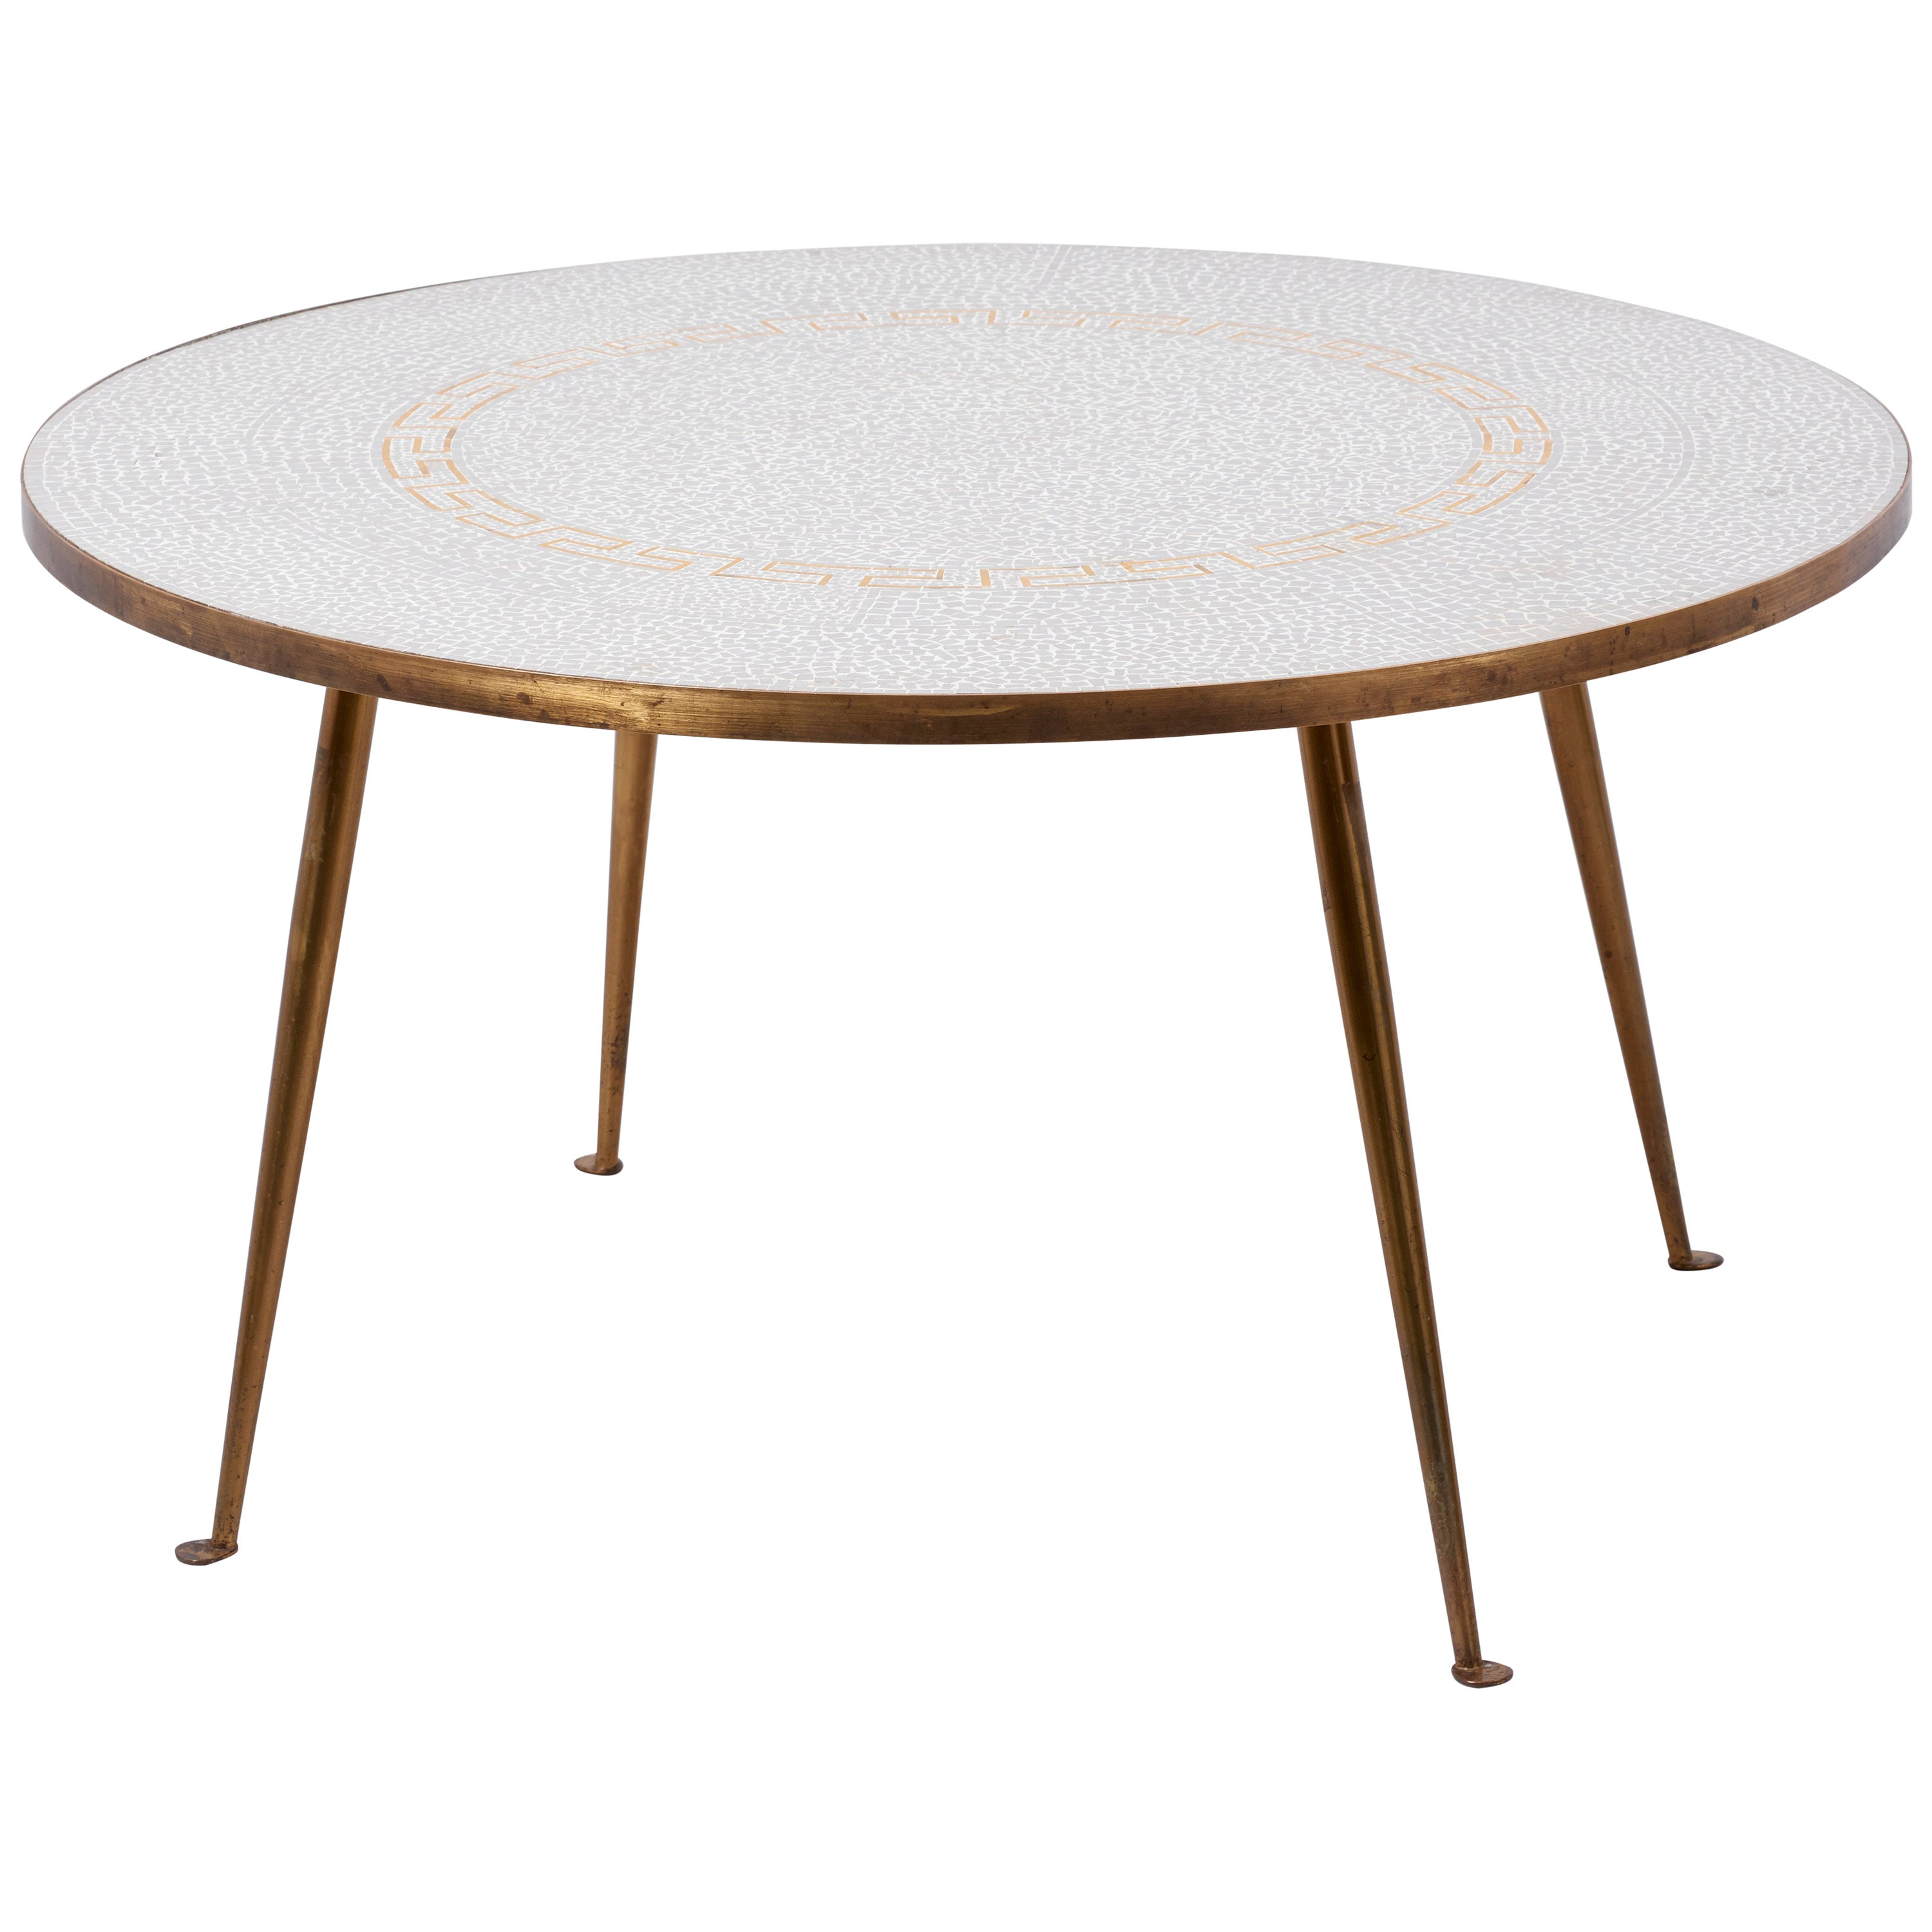 Round Mosaic Coffee Table by Berthold Müller-oerlinghausen, Germany